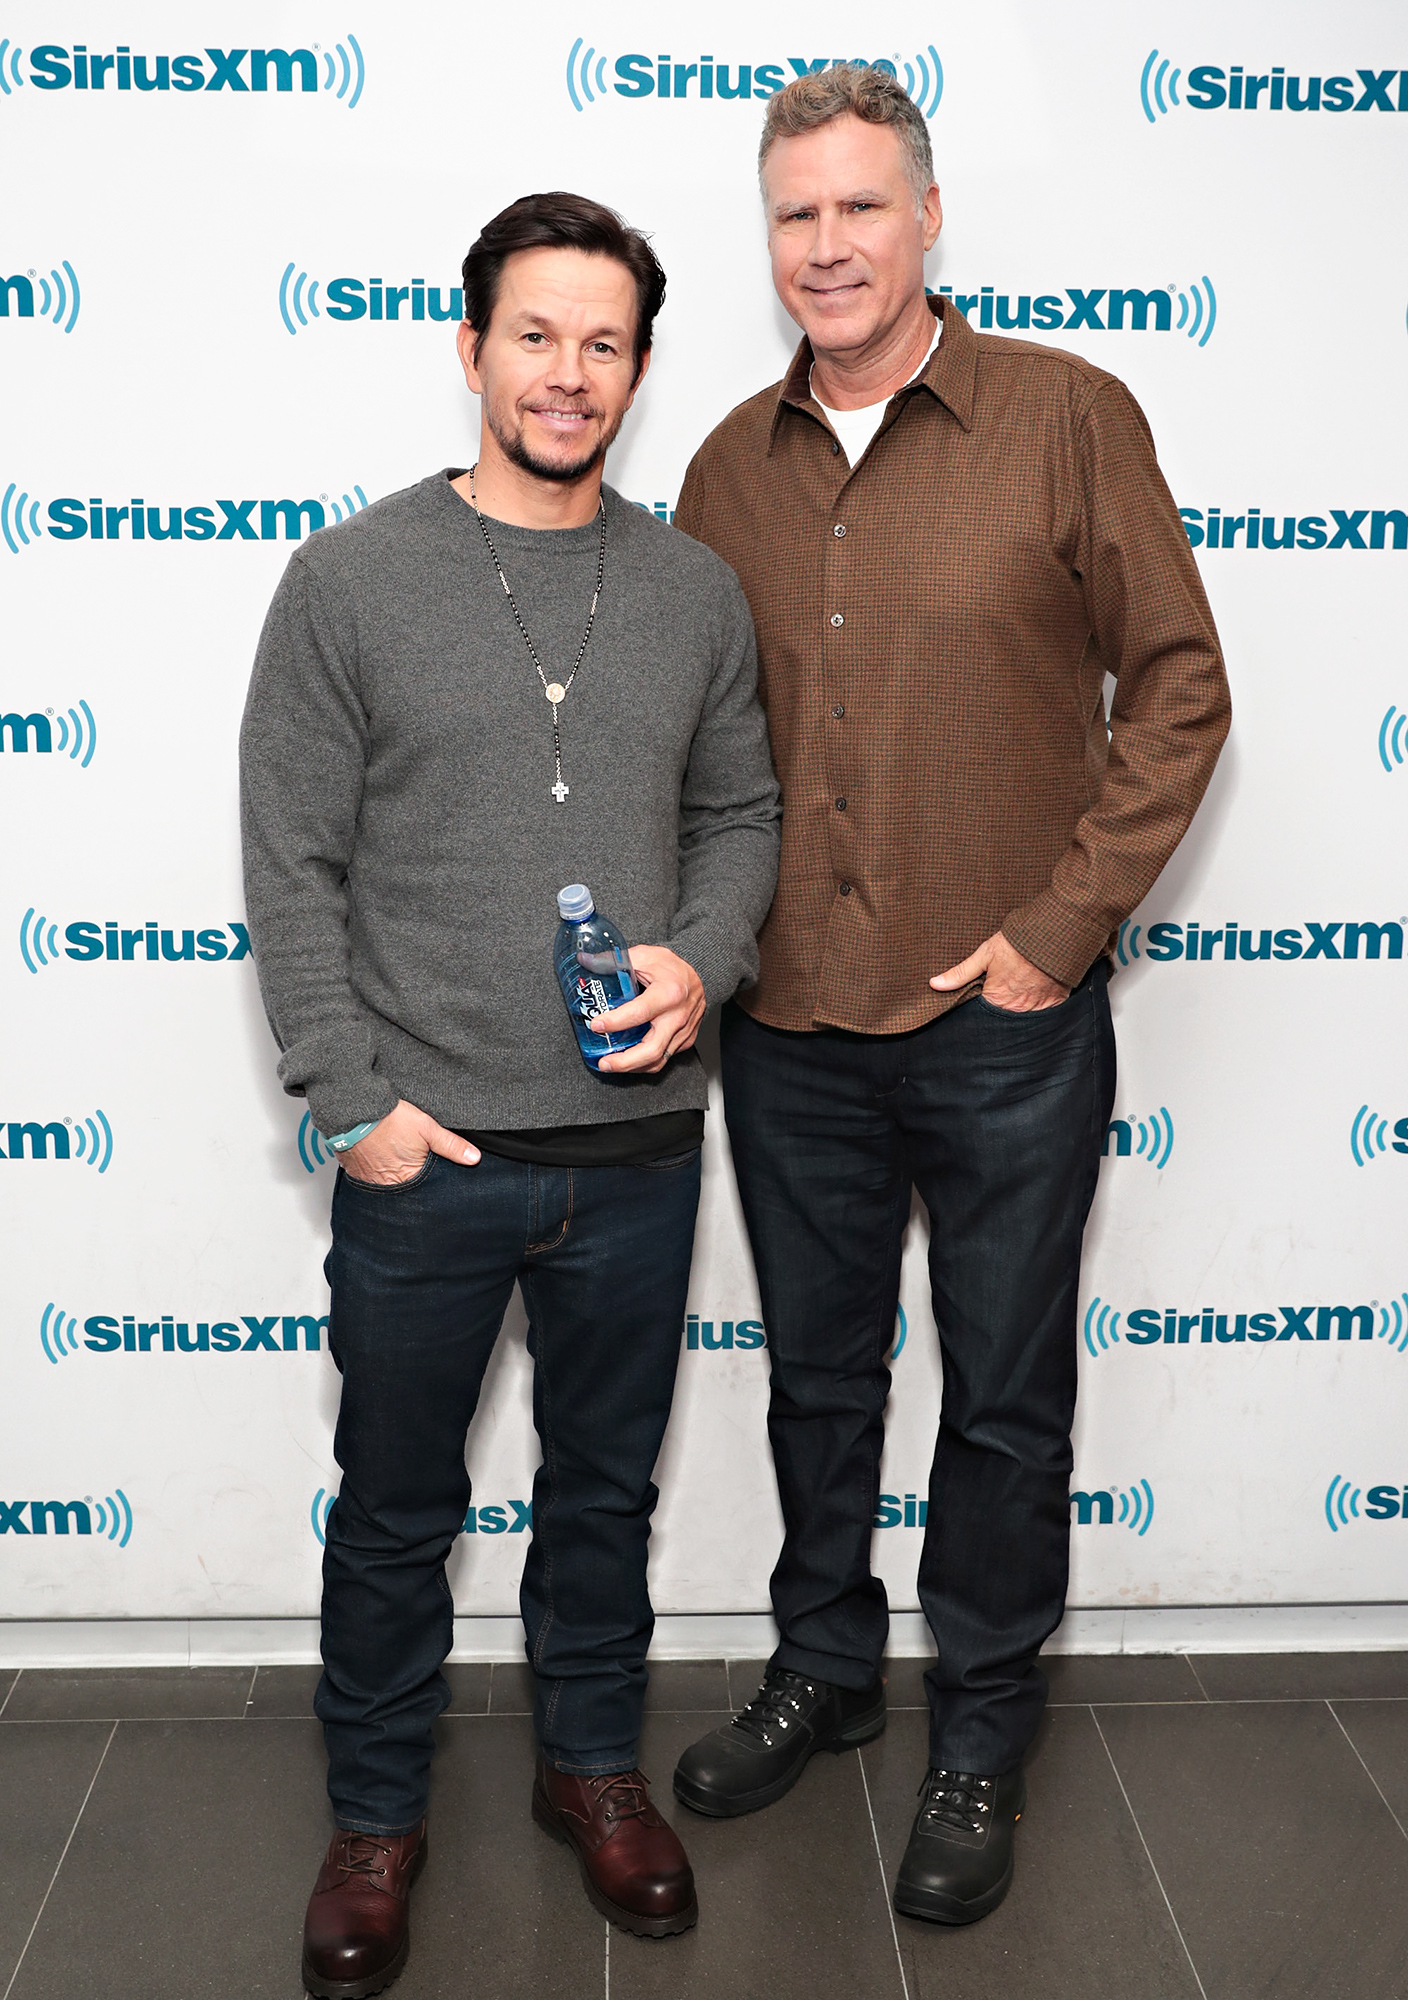 SiriusXM's Town Hall With Mark Wahlberg And Will Farrell Hosted By Andy Cohen